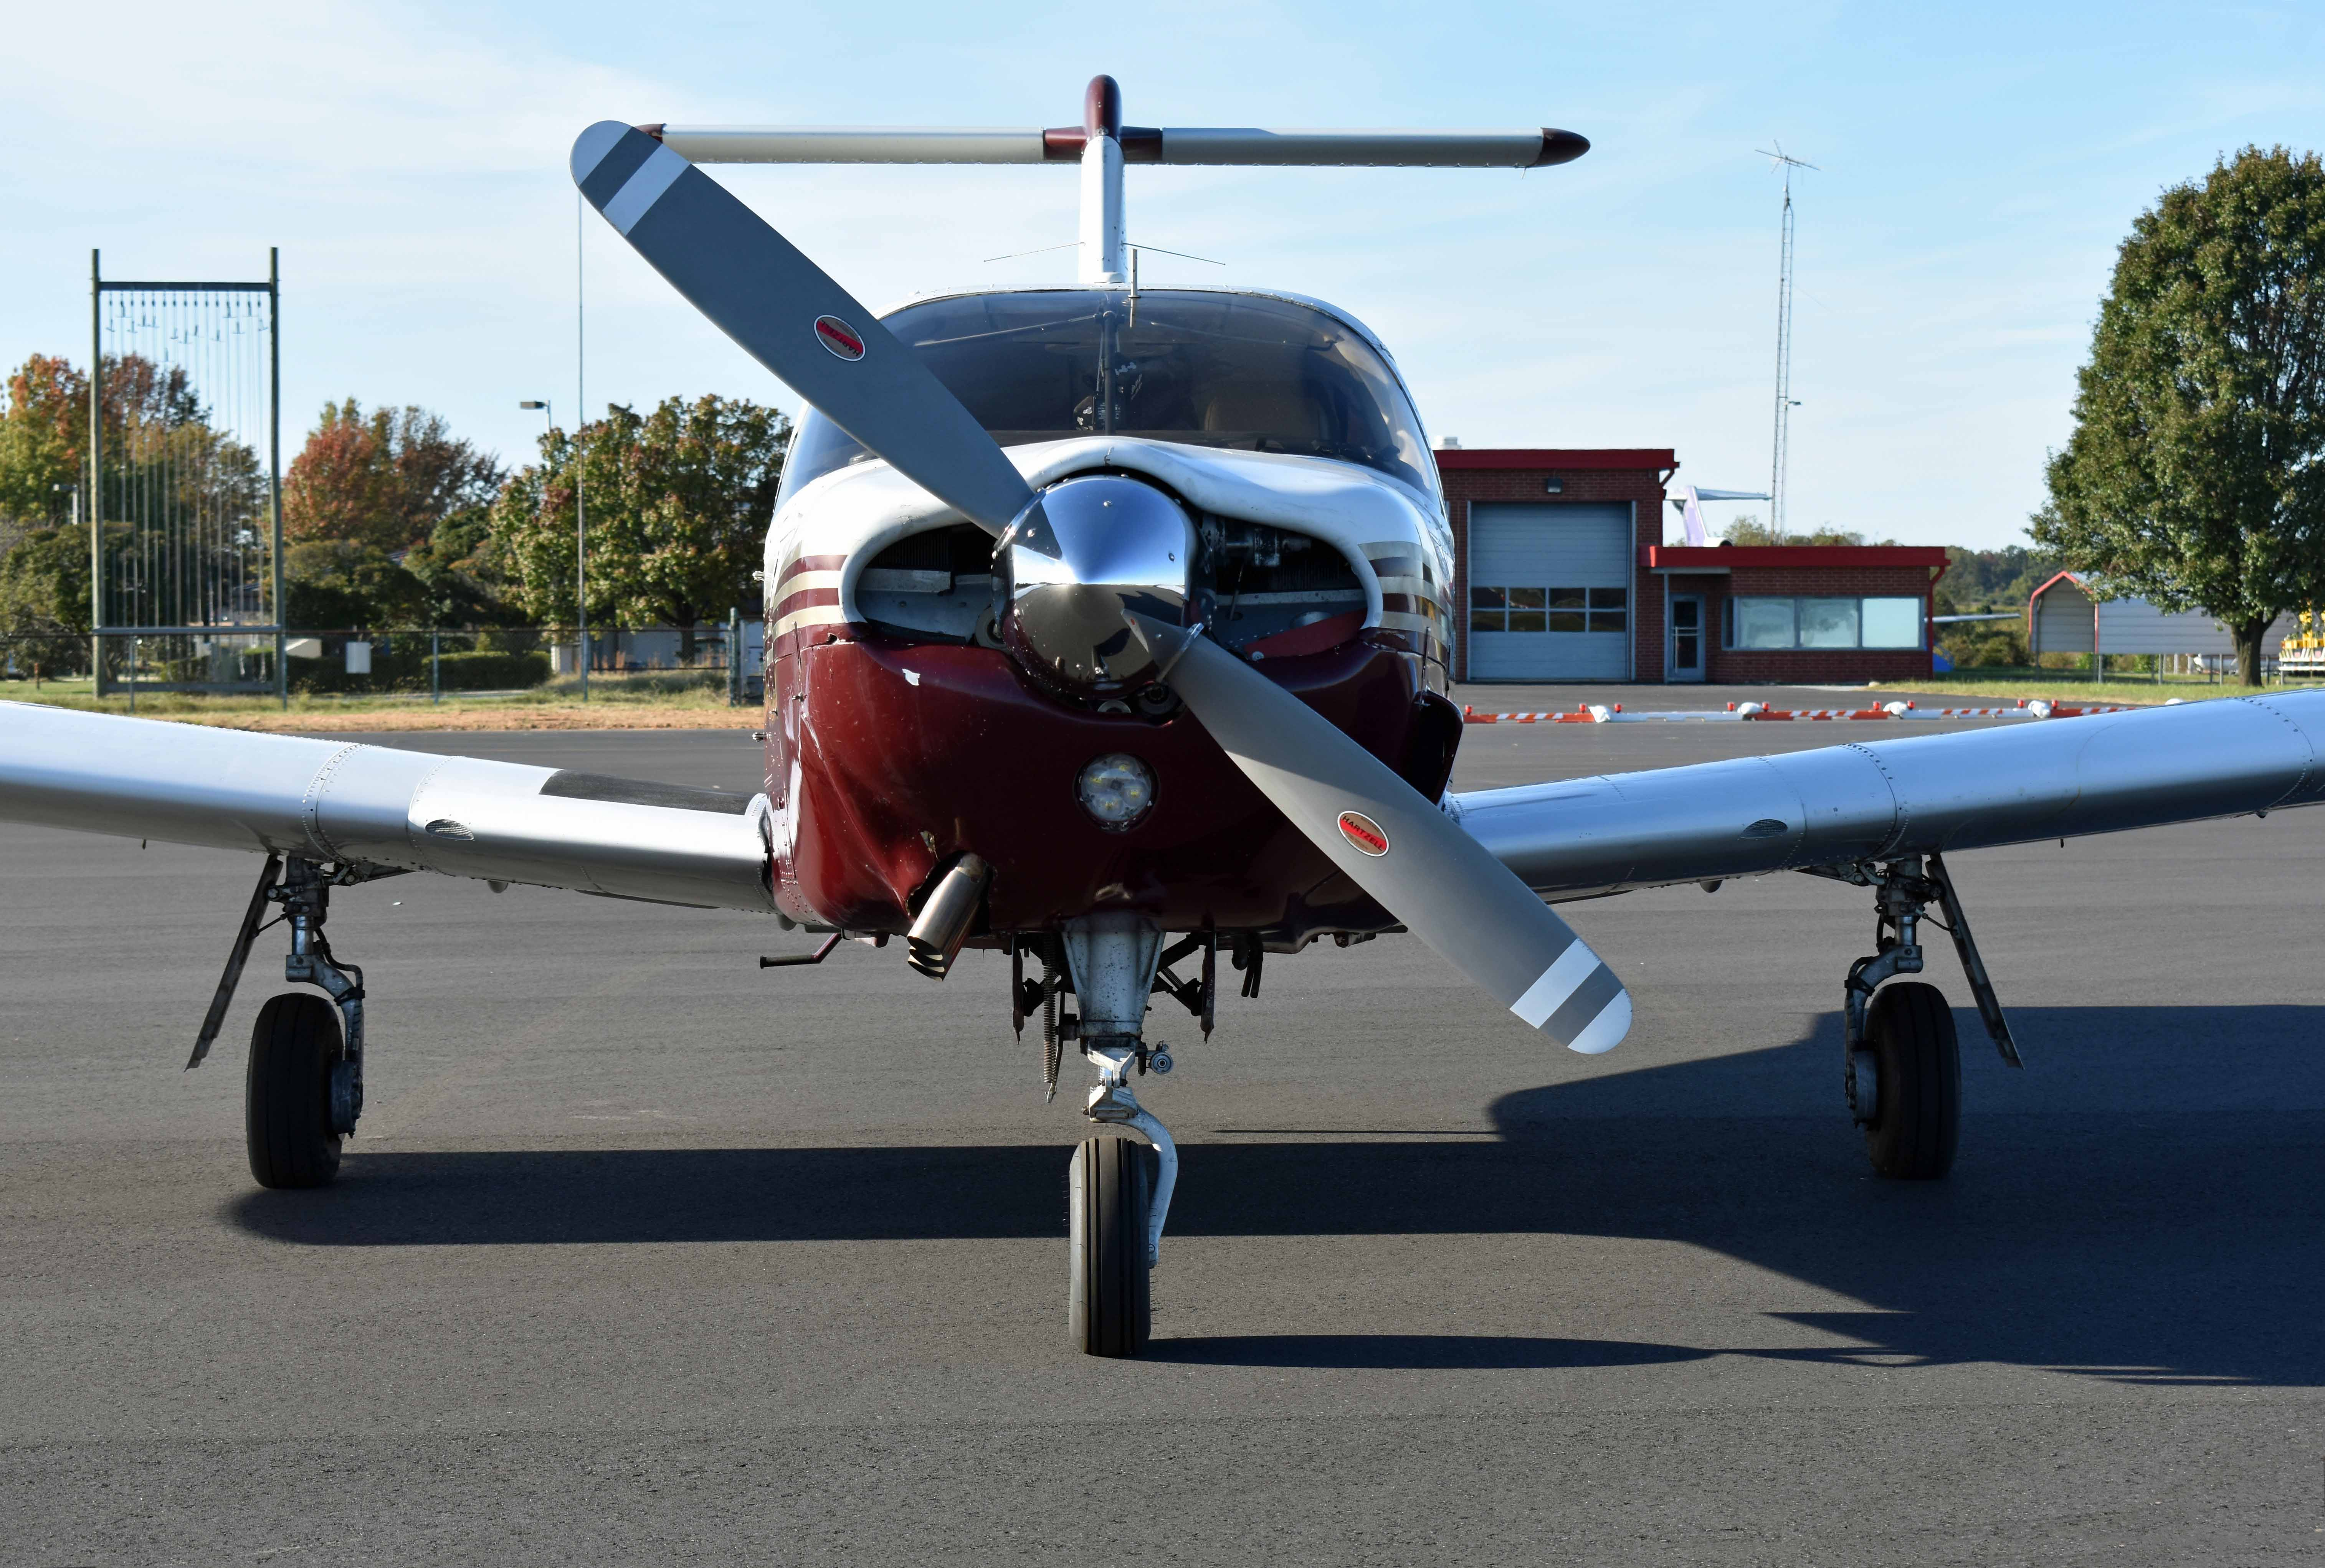 Aircraft Listing - Lance II PA-32RT-300 listed for sale